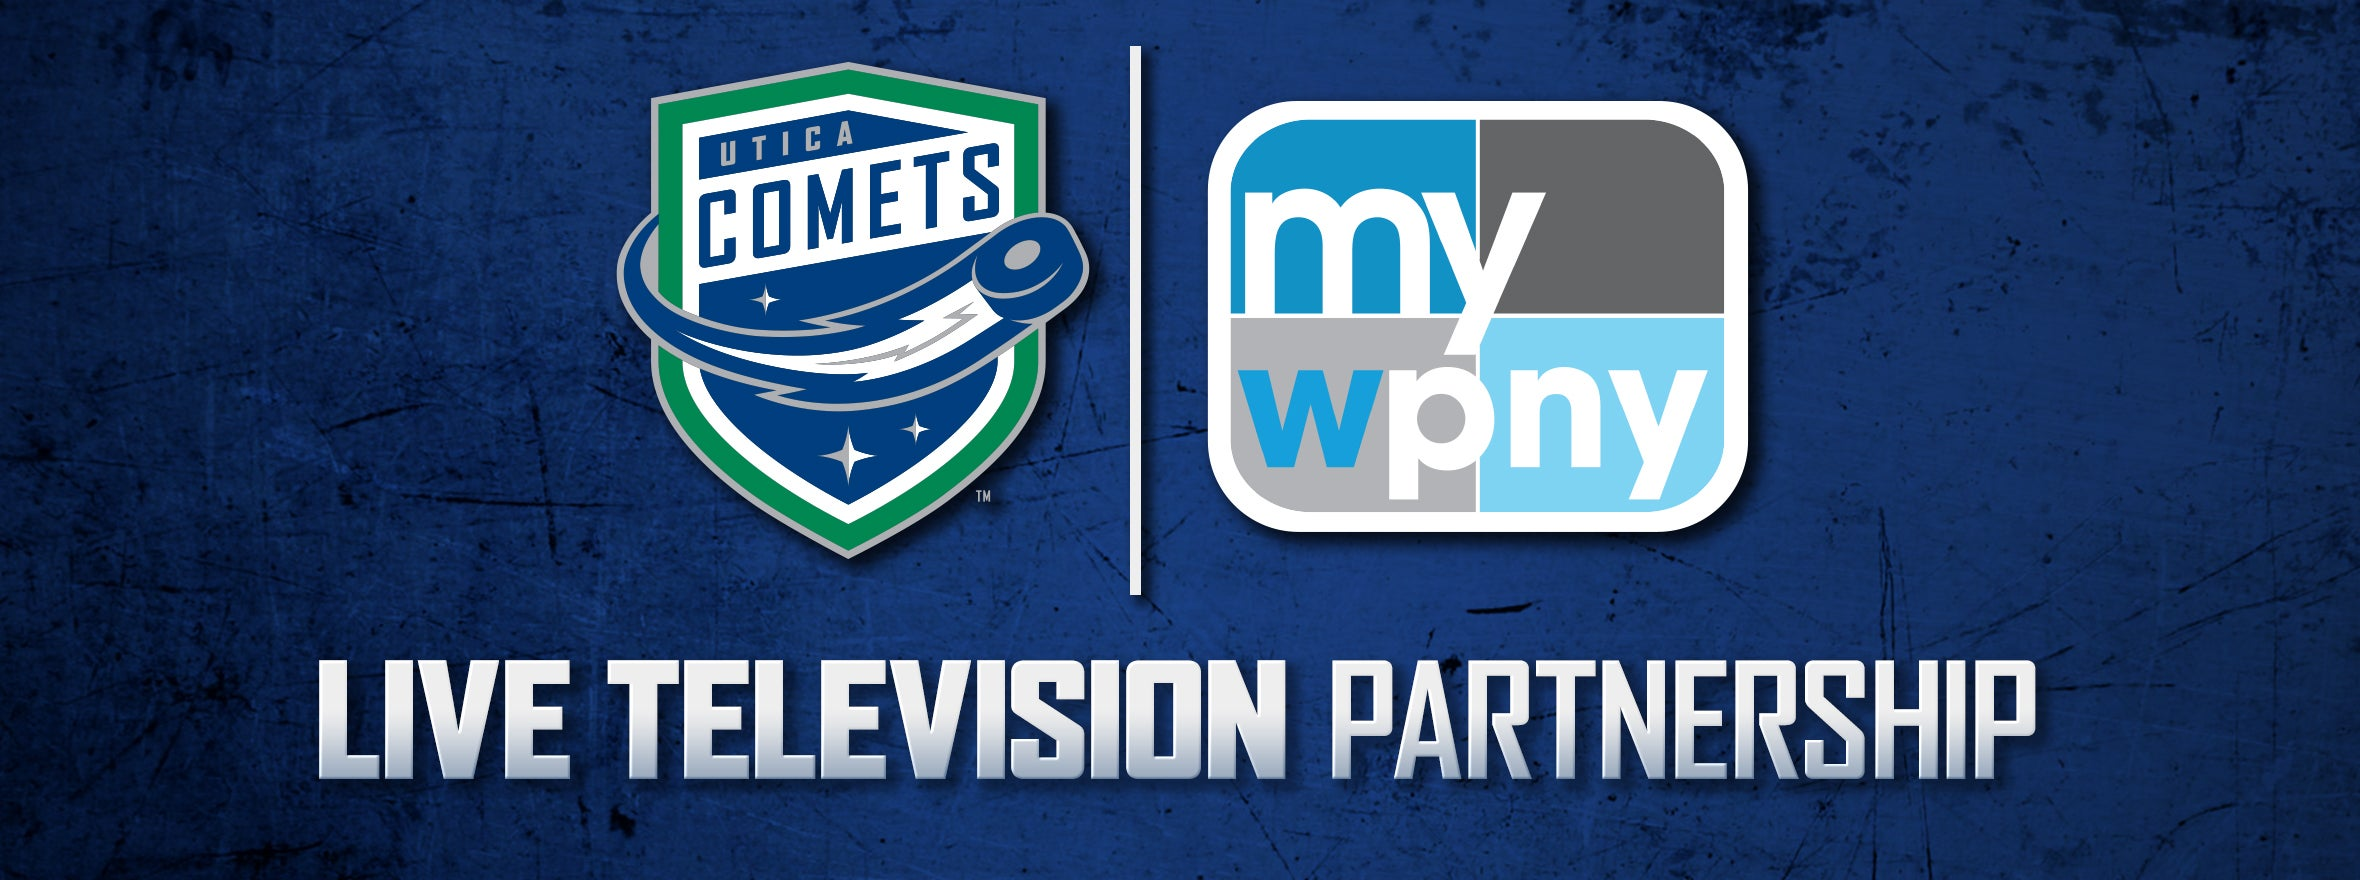 COMETS ANNOUNCE FIRST EVER LIVE TELEVISION PARTNERSHIP